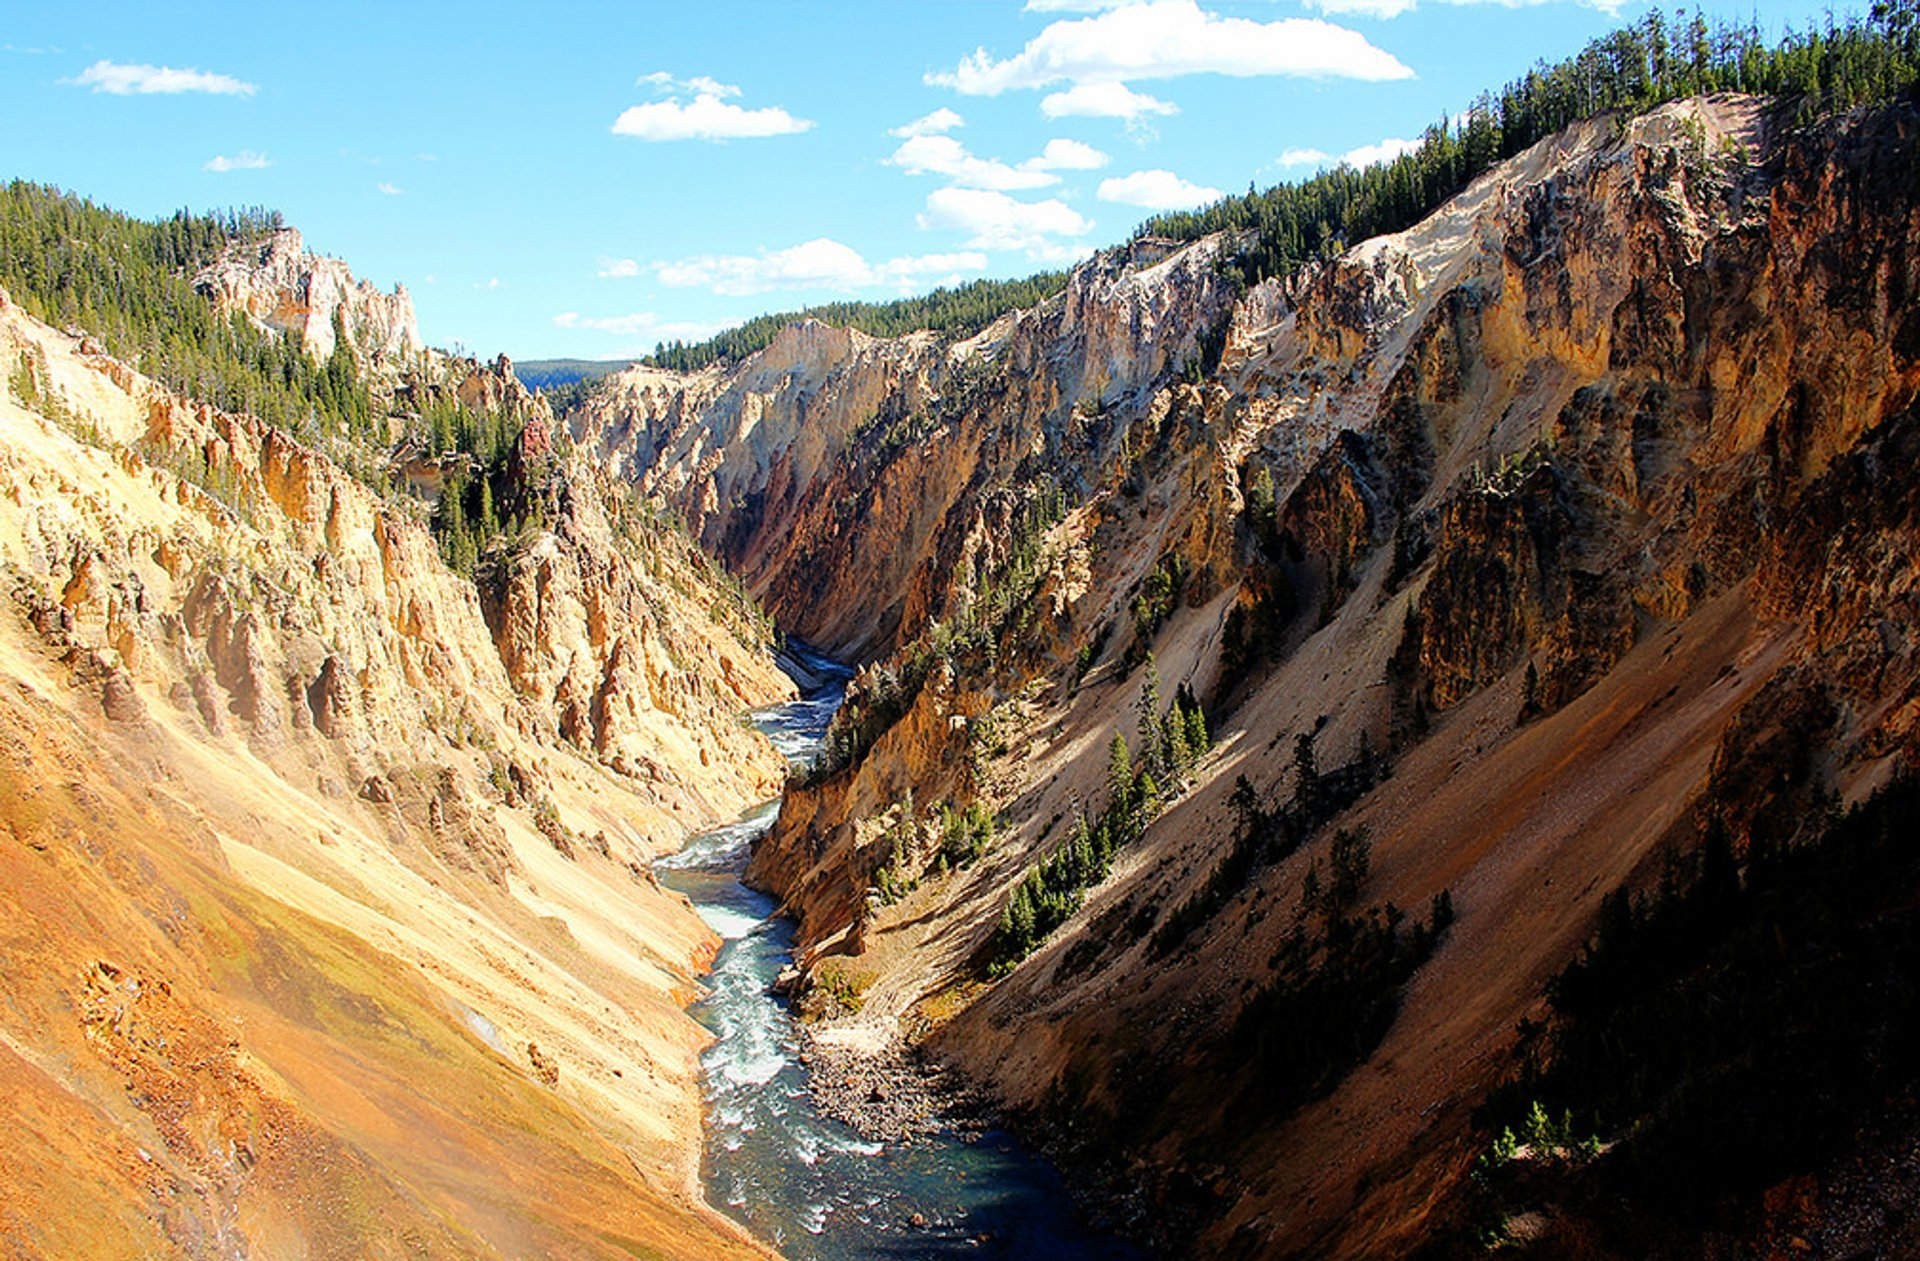 Grand Canyon of the Yellowstone in Yellowstone National Park 2019 - Best Time